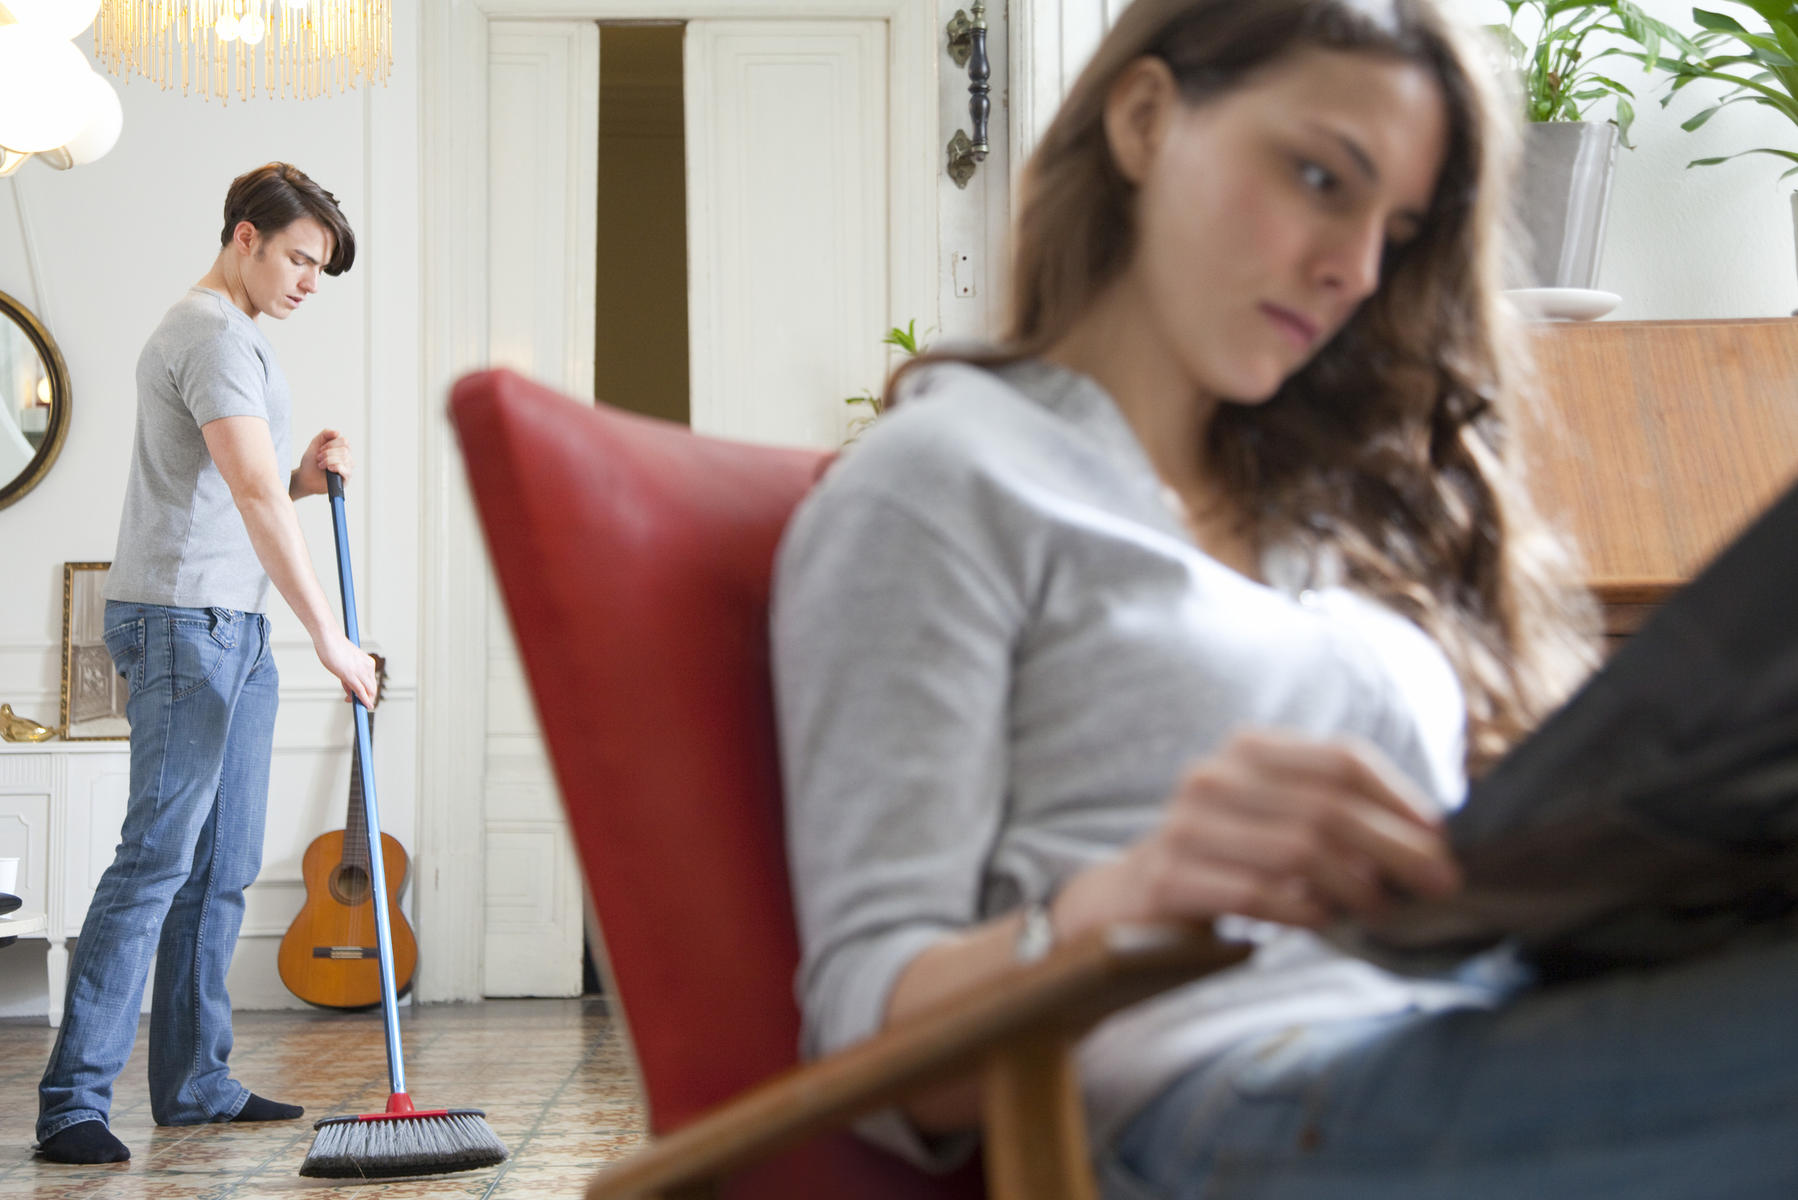 man sweeping while woman reads